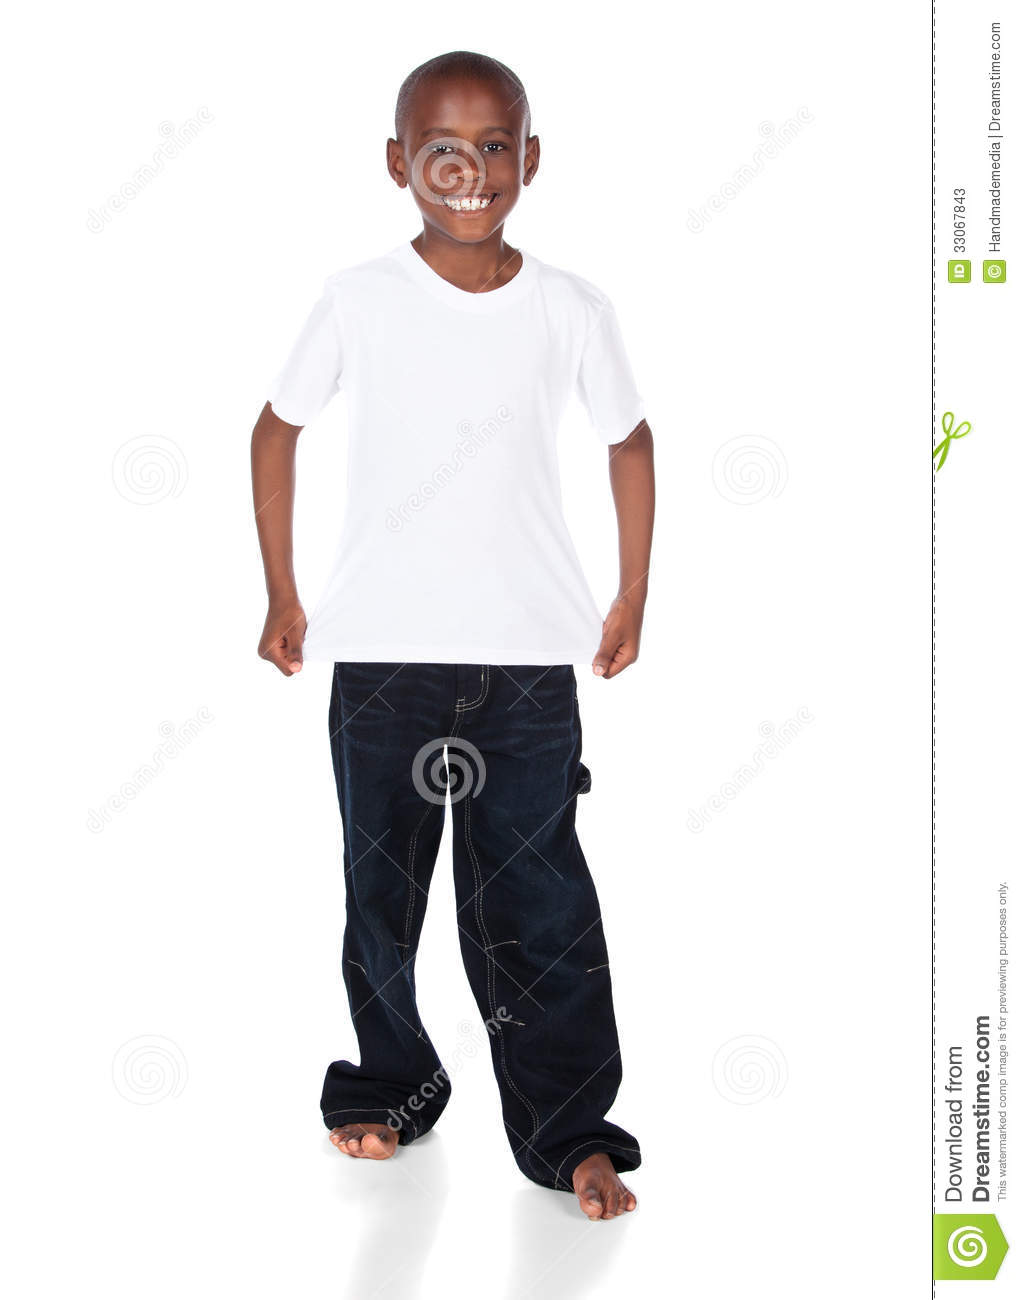 Cute African Boy Wearing A Bright White T Shirt And Dark Denim Jeans